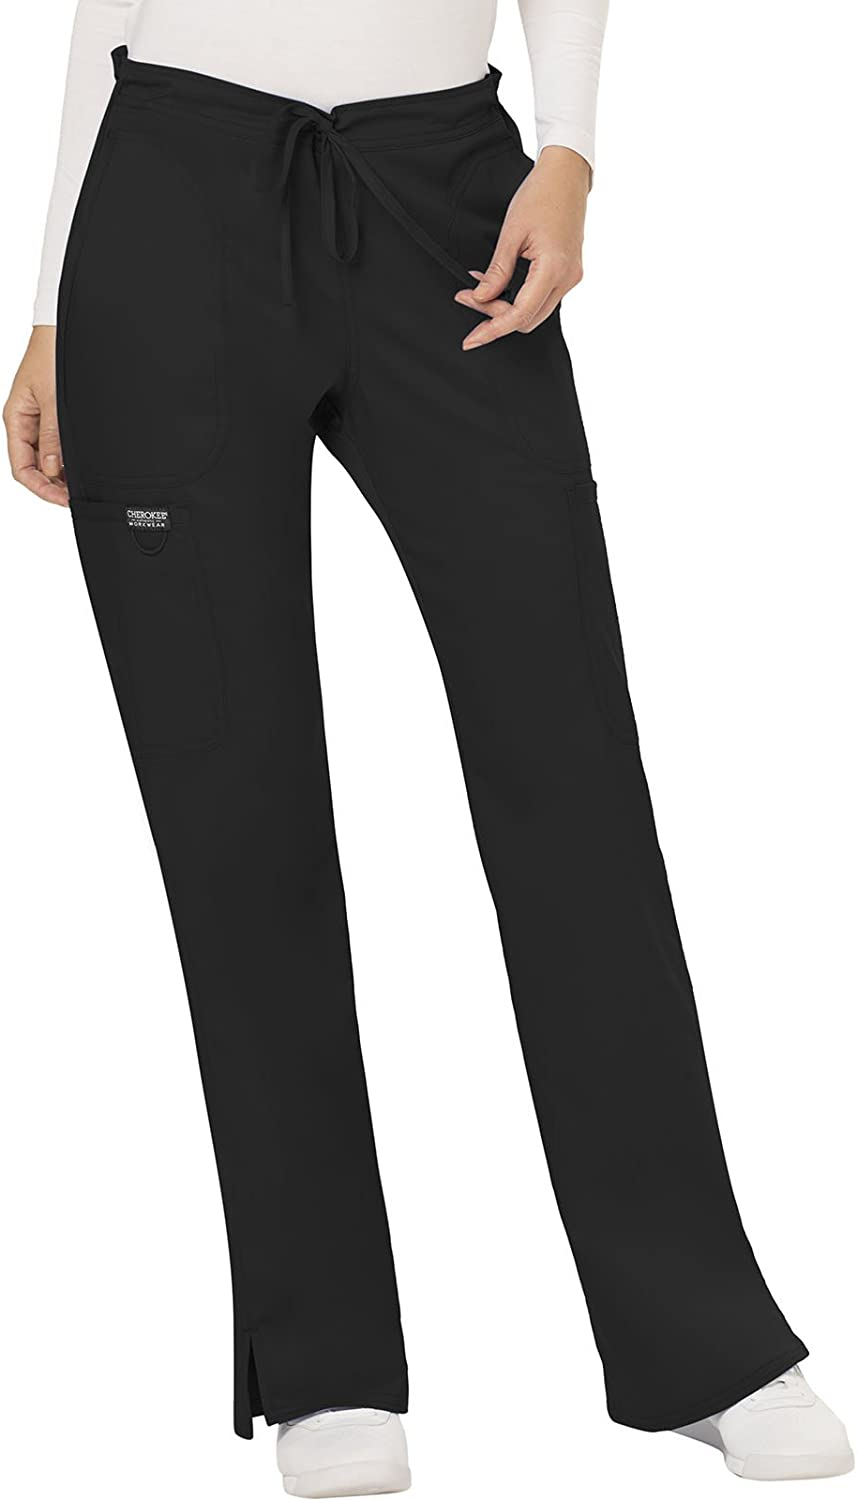 Cherokee Workwear Revolution Women's Mid Rise Moderate Flare Drawstring Scrub Pant: Clothing